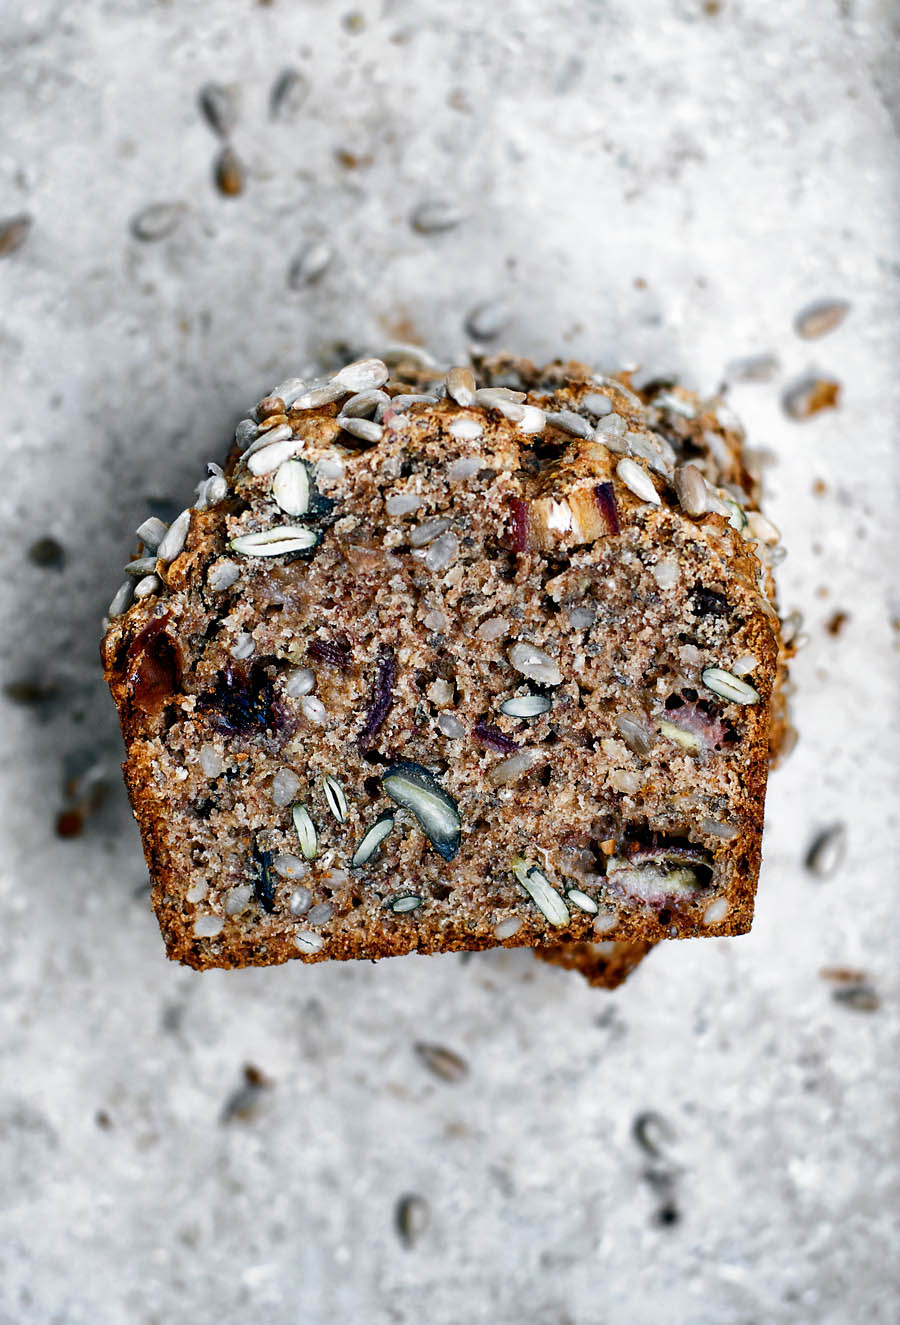 Several slices of banana bread with seeds and dates, stacked, top down view to show interior texture.